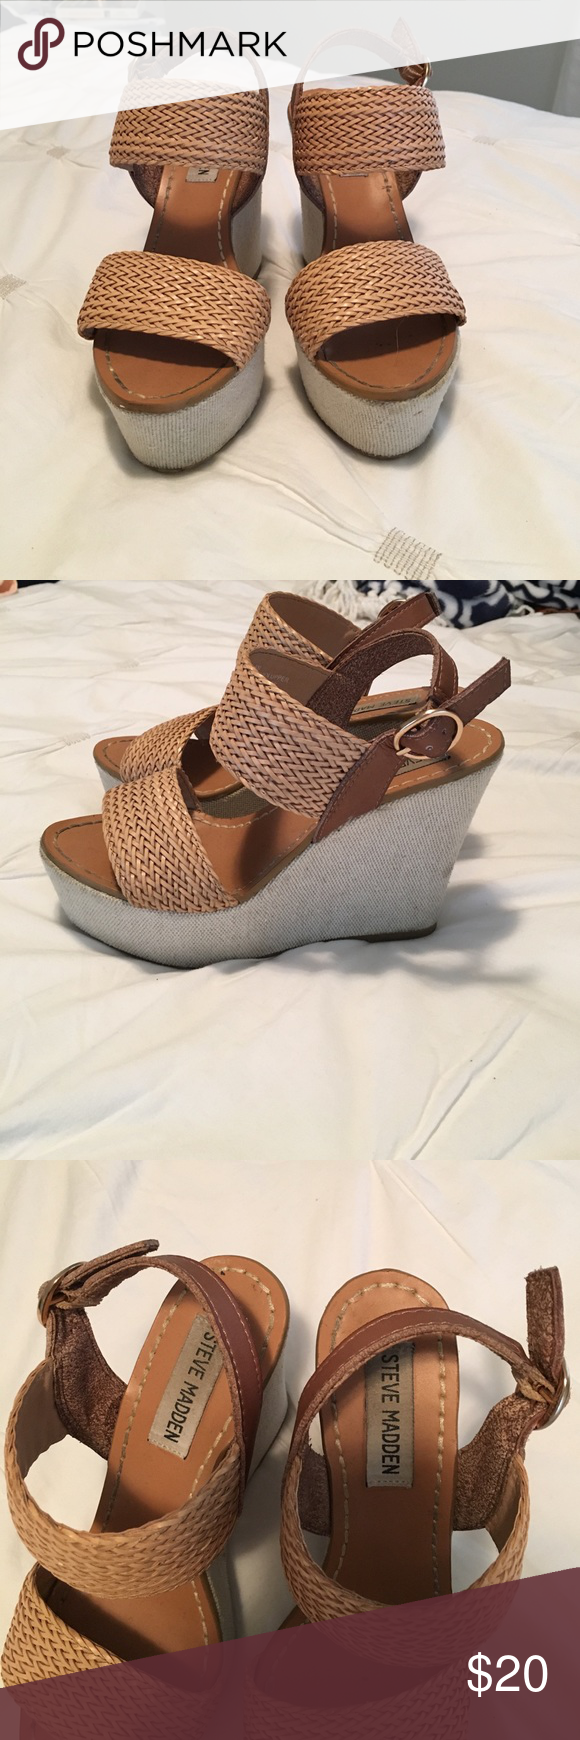 Steve Madden wedges Steve Madden wedges, perfect for summer! Worn a few times, in good condition! Steve Madden Shoes Wedges